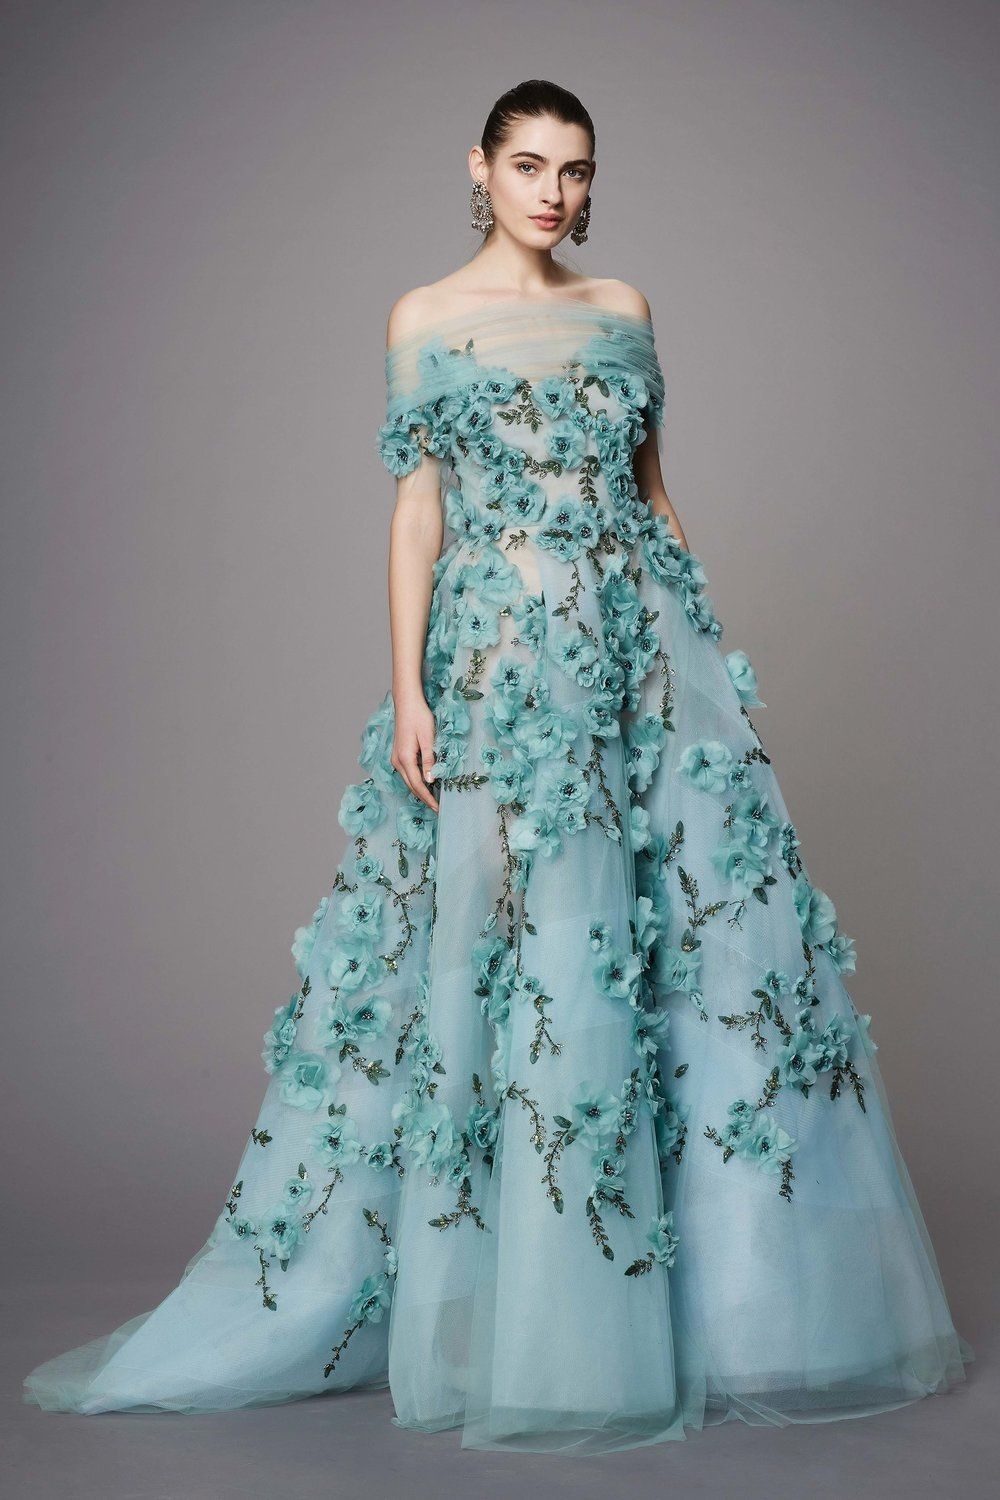 419cf9f6737  skyblue  exclusive  designer  collectionoff  pakisatani dress   manufacturedby  curomoda  buyonlineat  fabbily  gown  fashion  dress   style  wedding ...